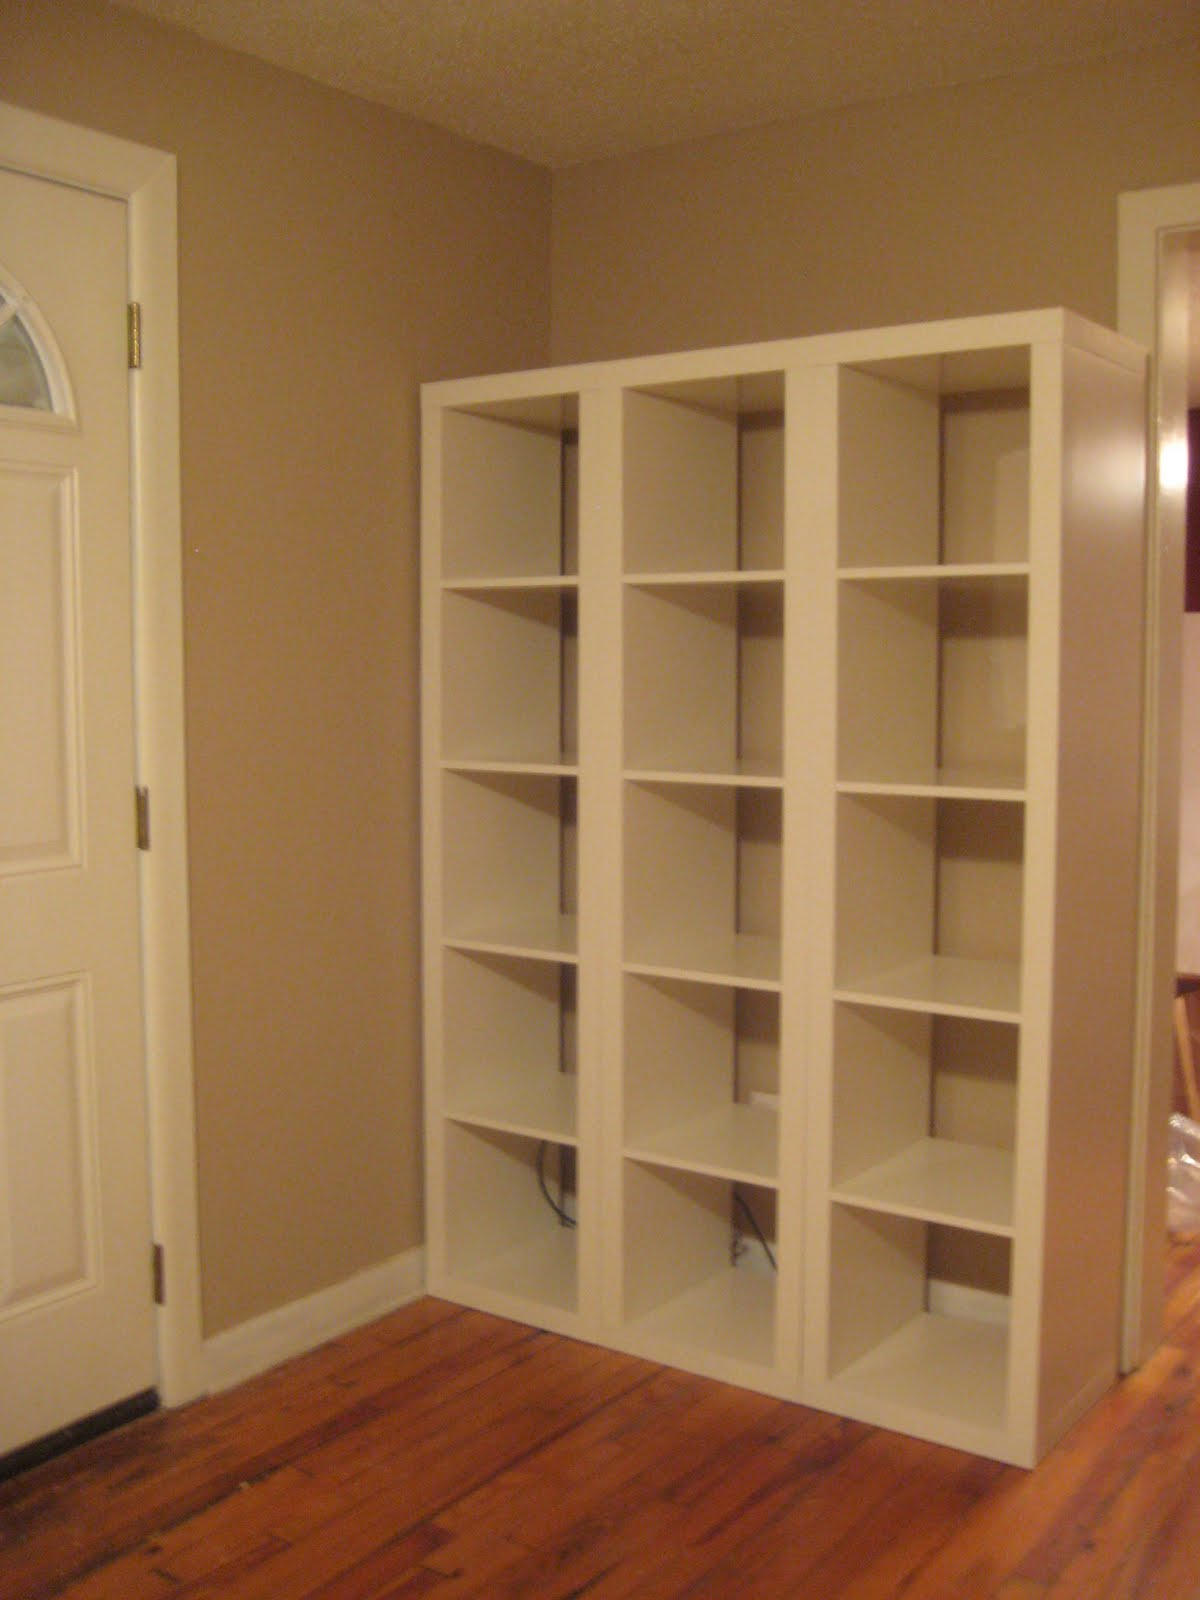 Ikea Expedit Oak Discontinued ~   front door, we opted to purchase 3 individual Expedit Shelving Units